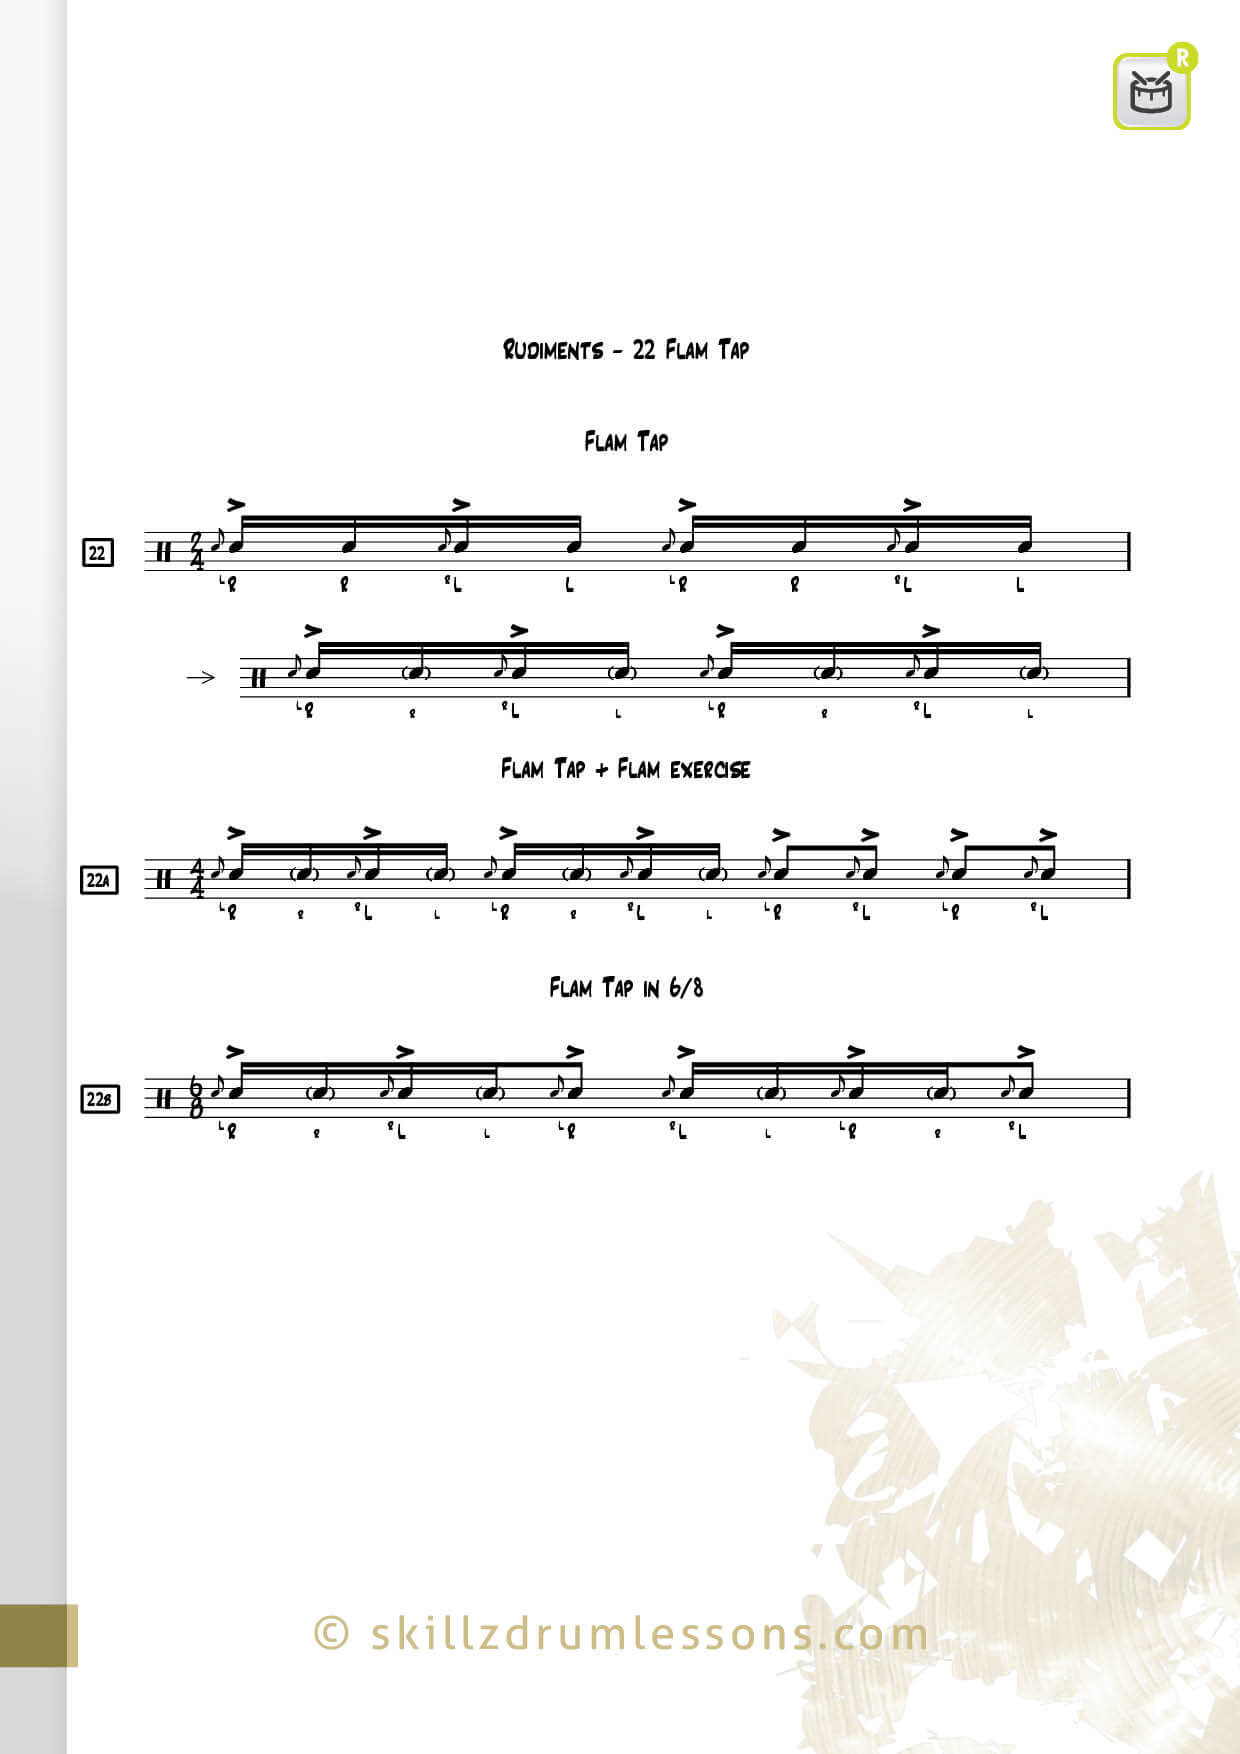 This is an image of the Official 40 Essential P.A.S. Rudiments #22 The Flam Tap by Skillz Drum Lessons